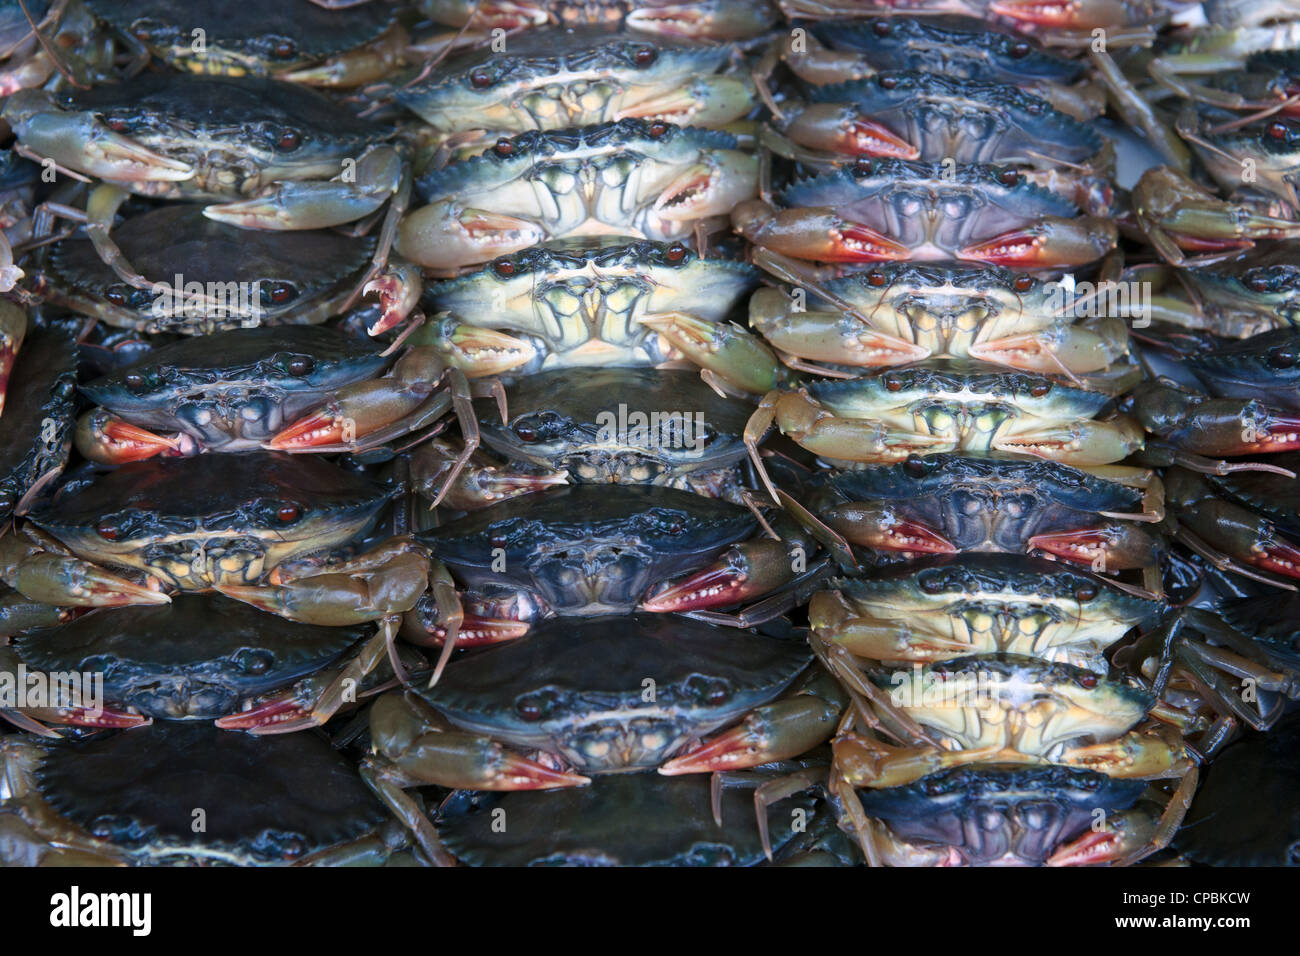 lots of fresh crabs for sale in the market - Stock Image